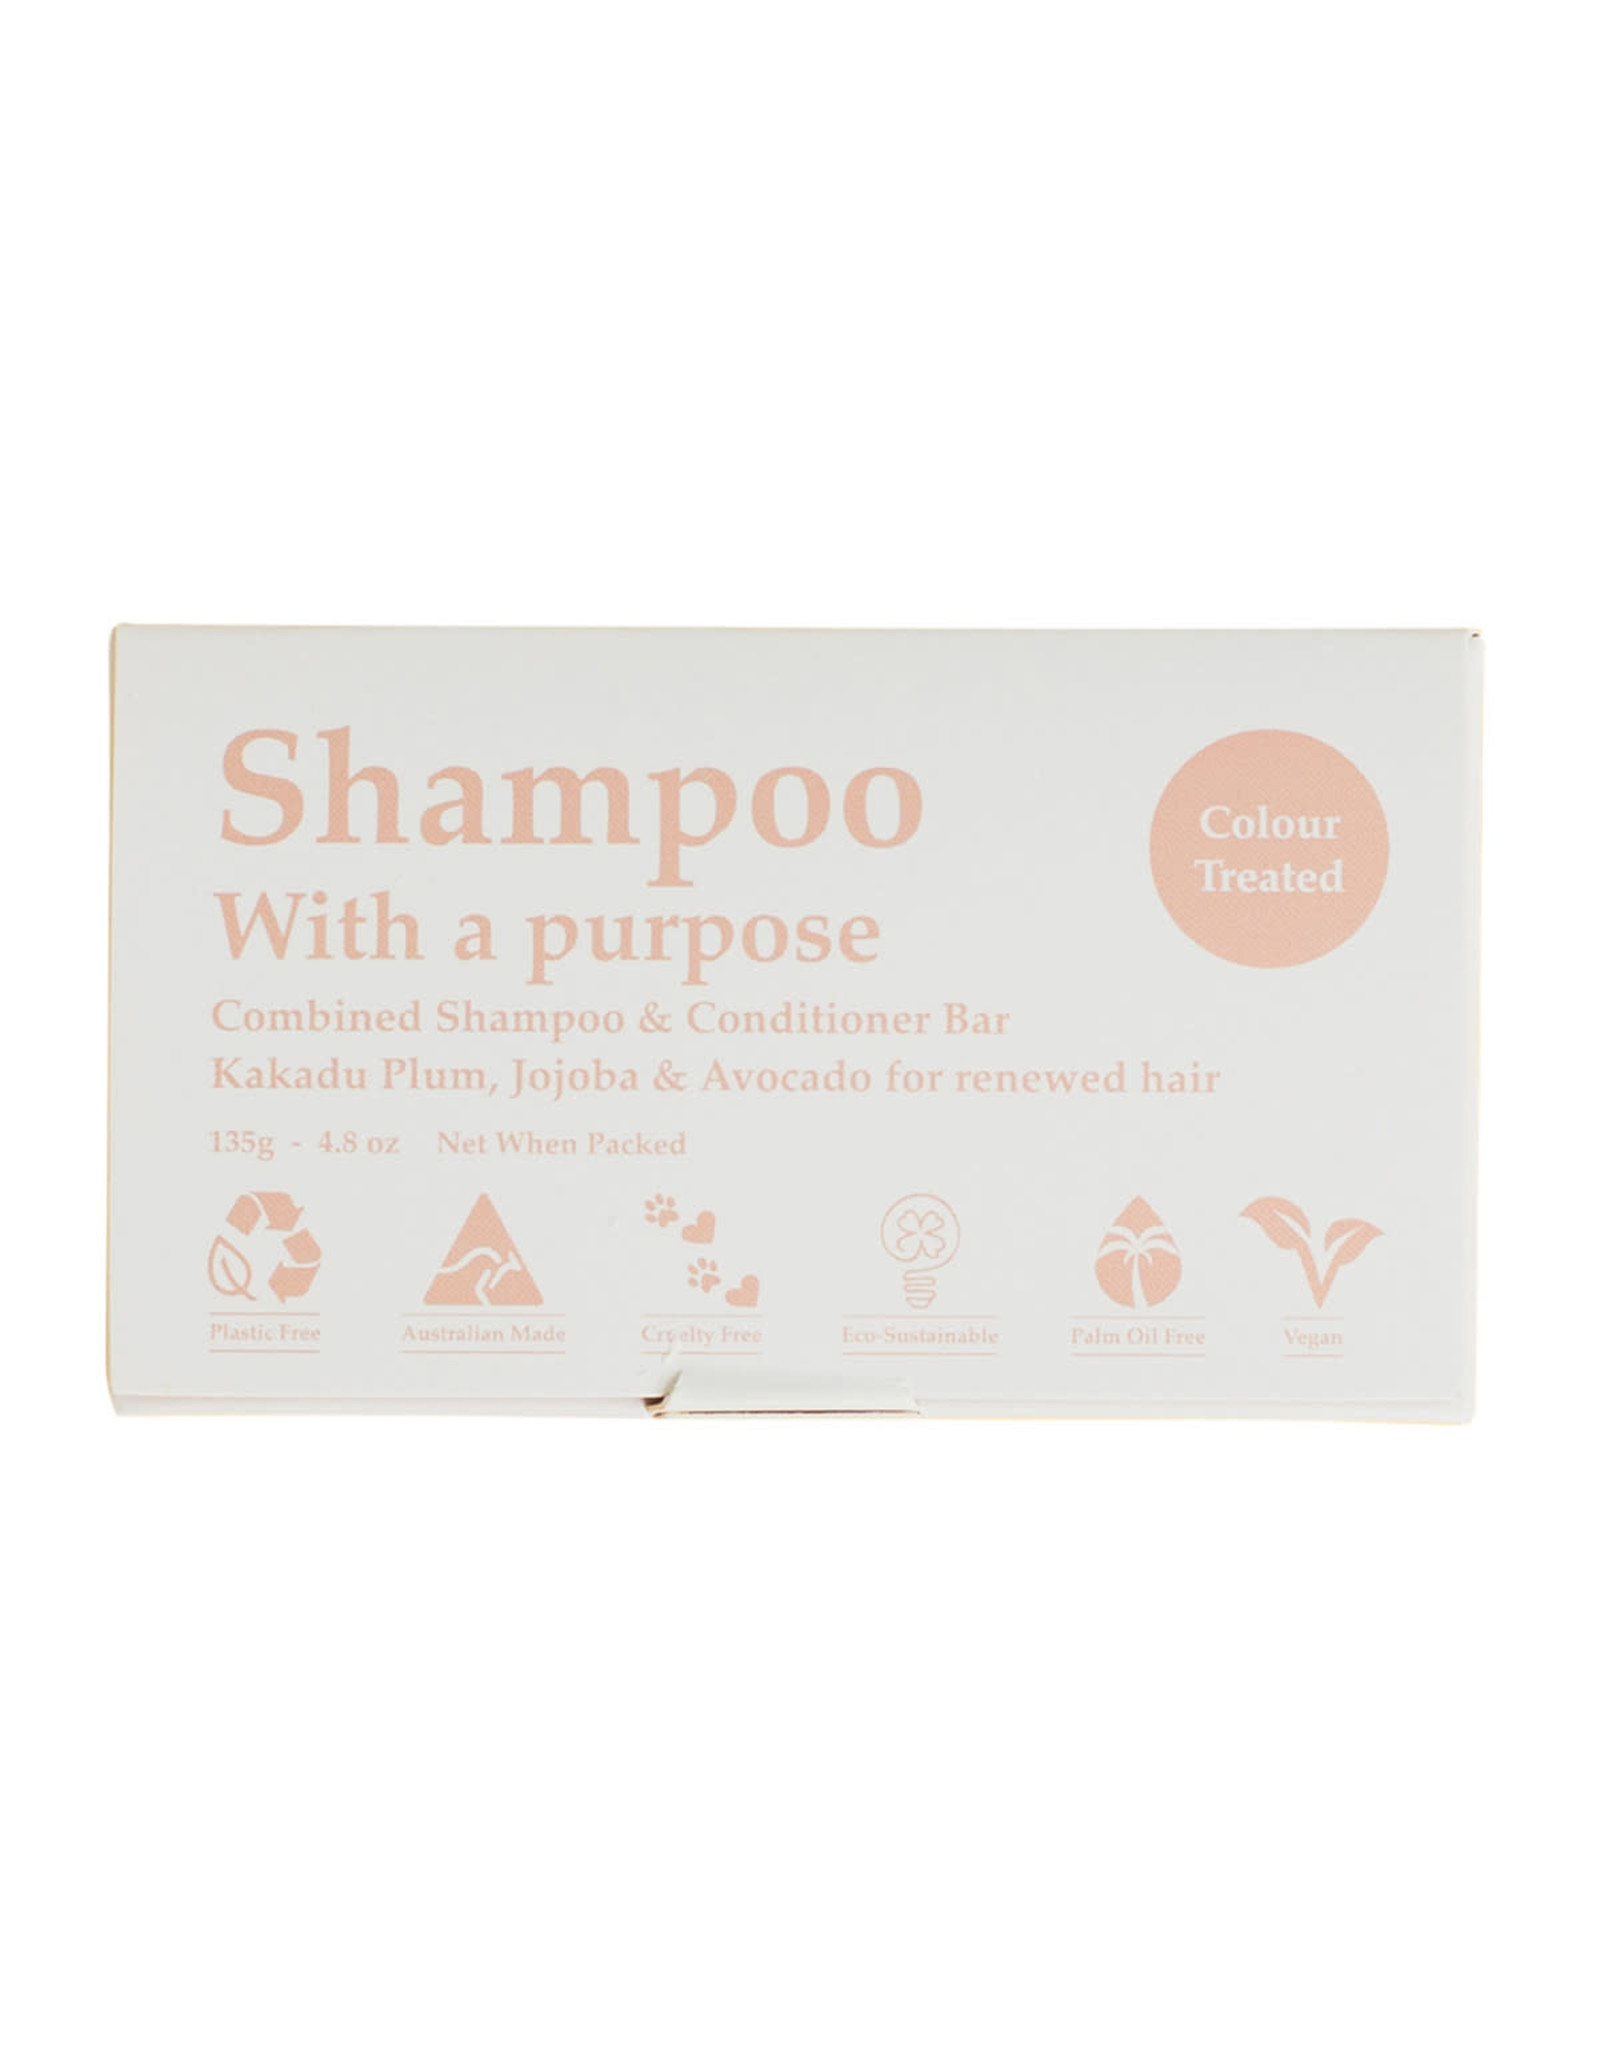 Shampoo with a Purpose Shampoo & Conditioner Bar - For Colour Treated Hair - 135g